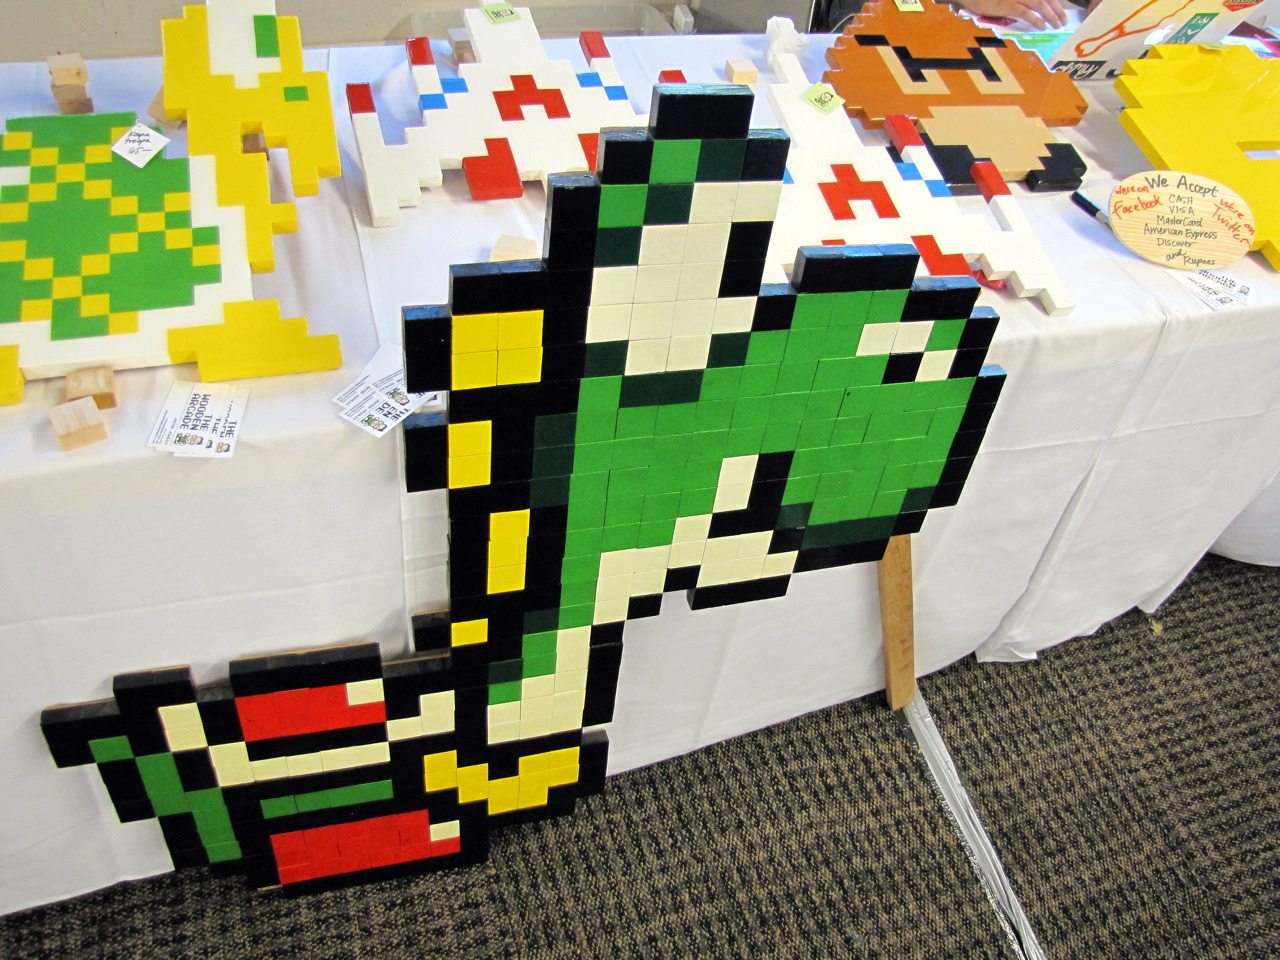 The Wooden Arcade at the 2011 Portland Retro Gaming Expo Follow Us! Tumblr || Website || Facebook || Twitter || Store